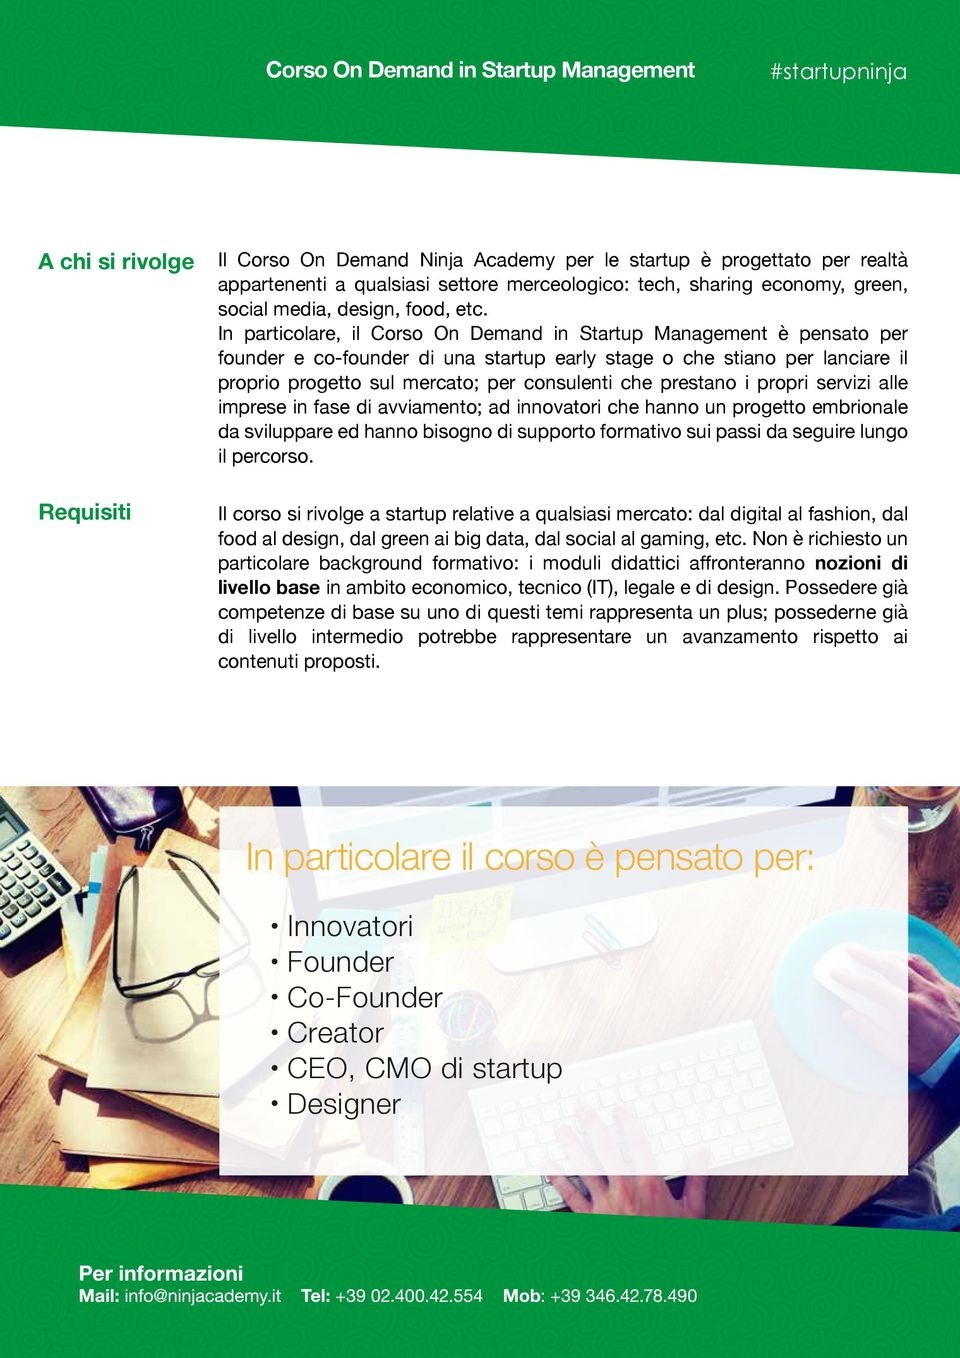 In particolare, il Corso On Demand in Startup Management è pensato per founder e co-founder di una startup early stage o che stiano per lanciare il proprio progetto sul mercato; per sulenti che